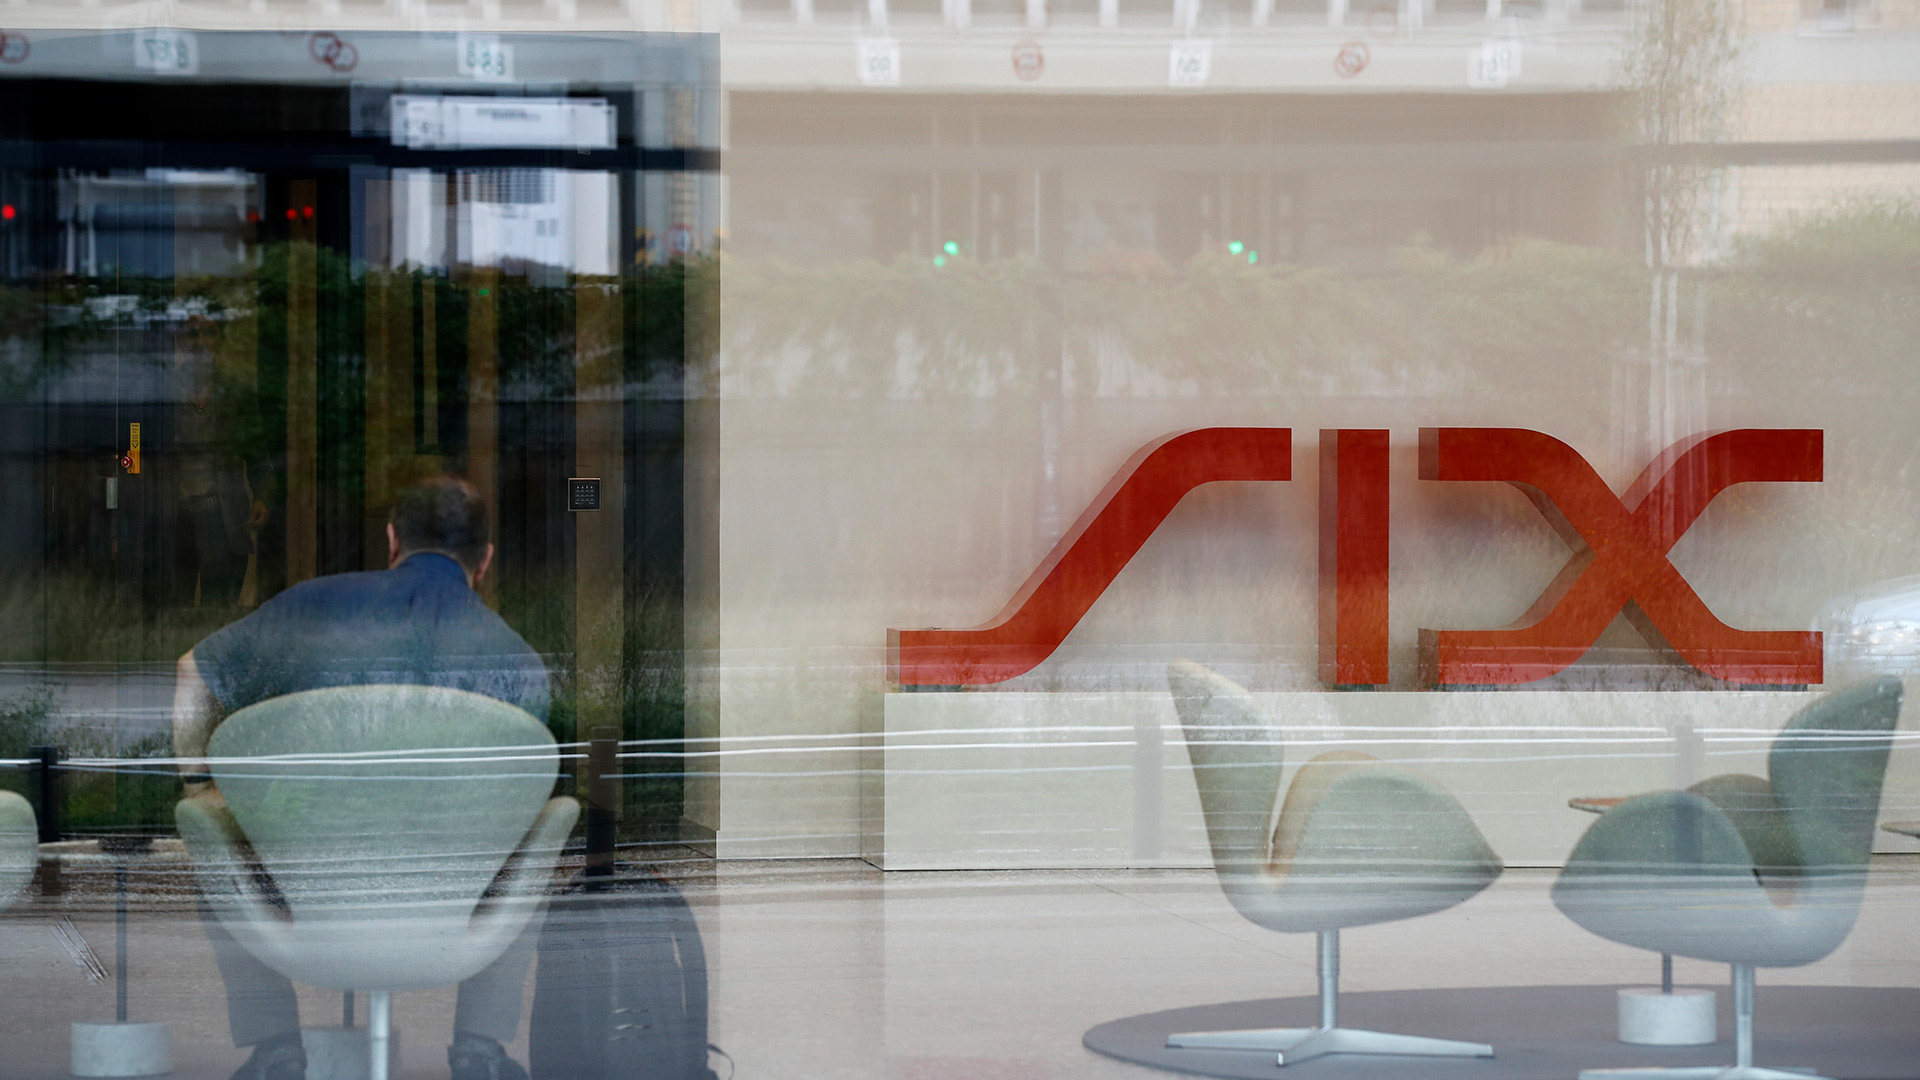 SIX receives approval from Swiss regulator to operate digital securities market